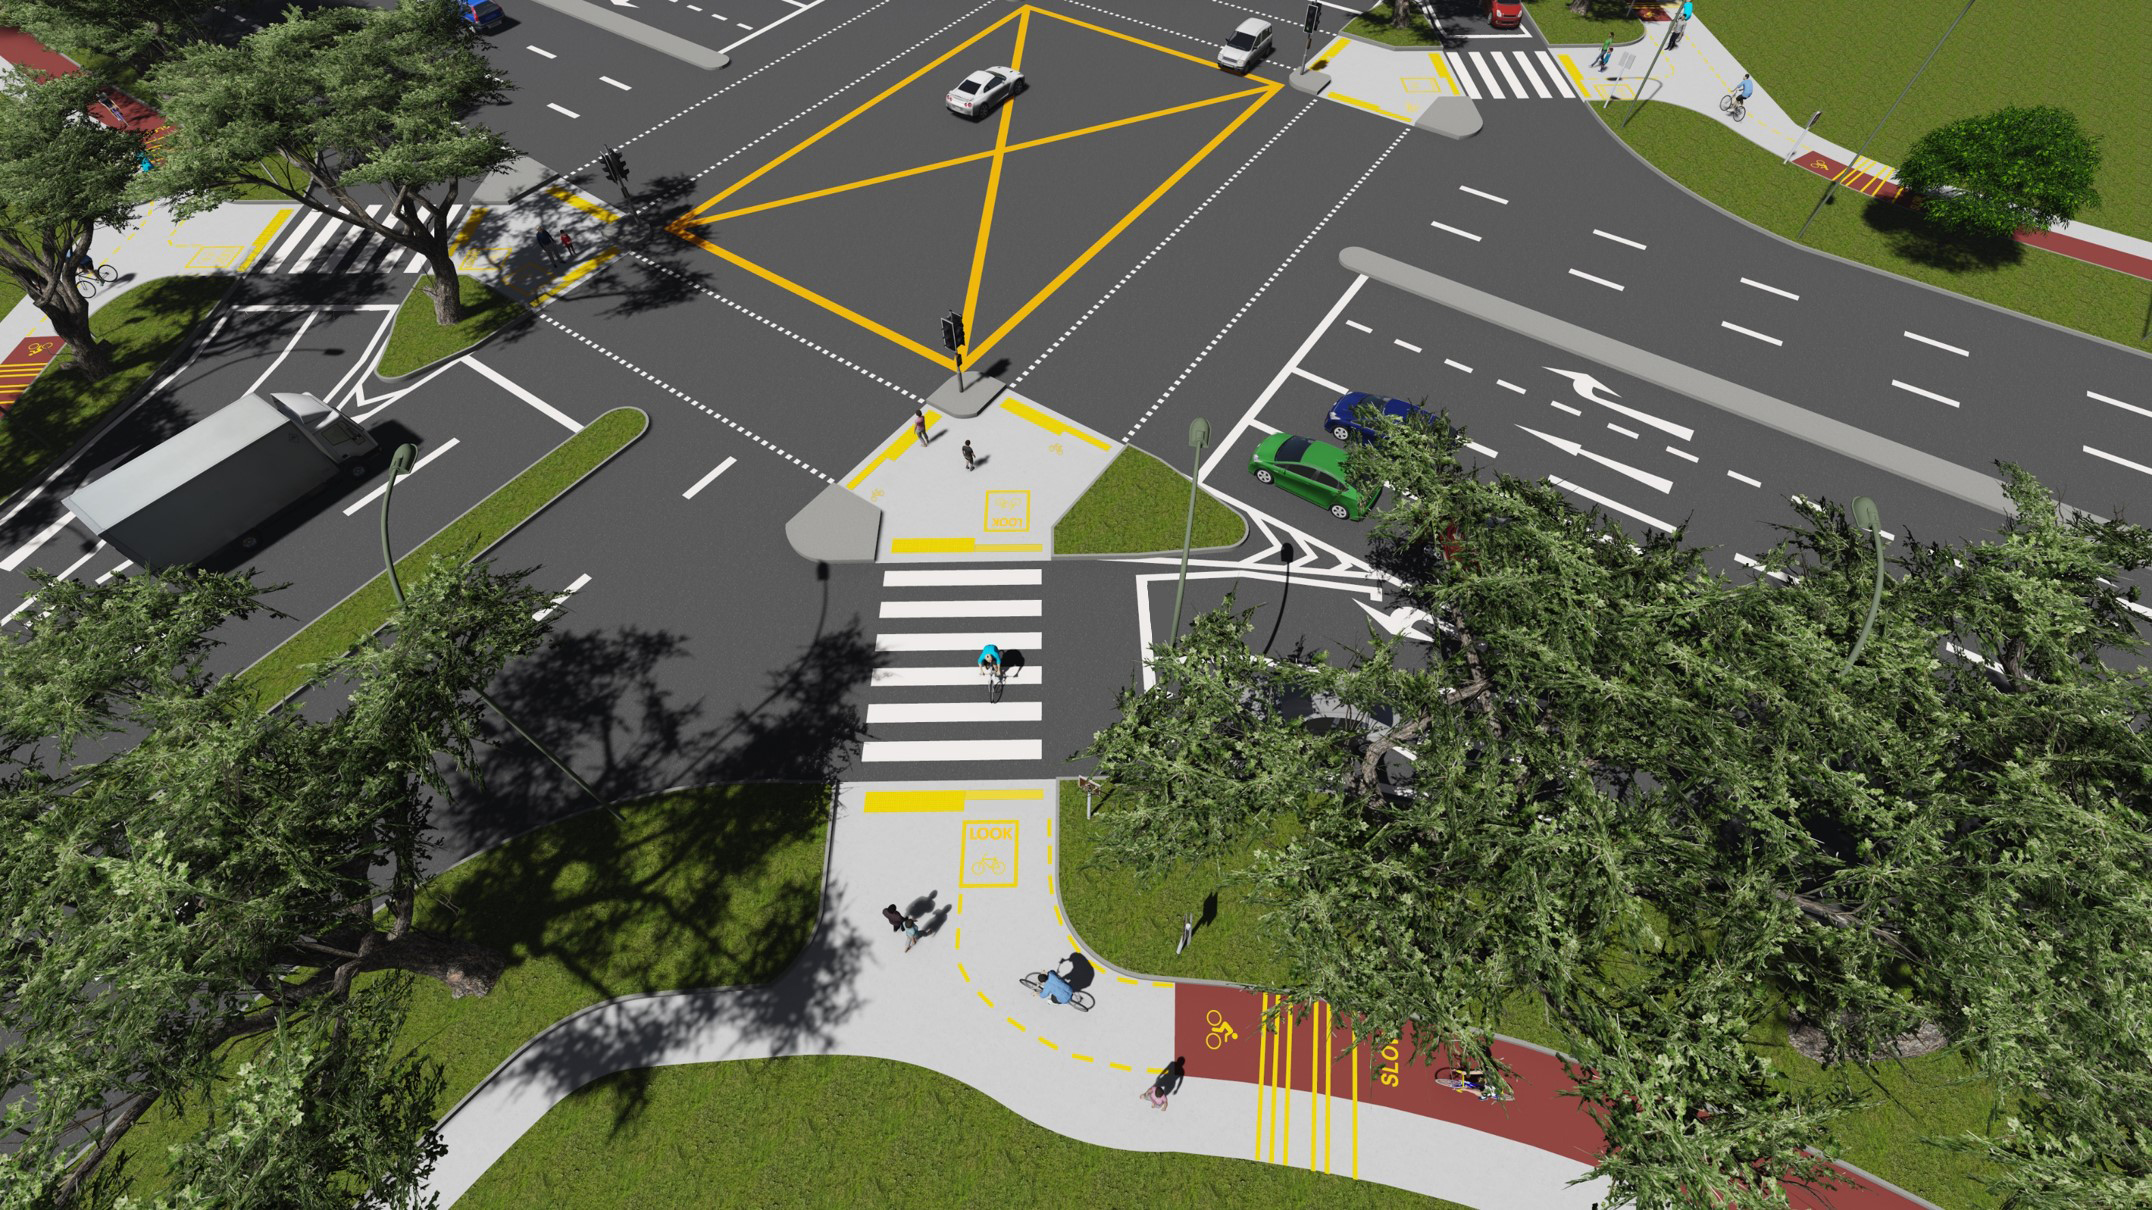 SCLD's Visualization of a Typical Crossing Treatment for the LTA Cycling Network